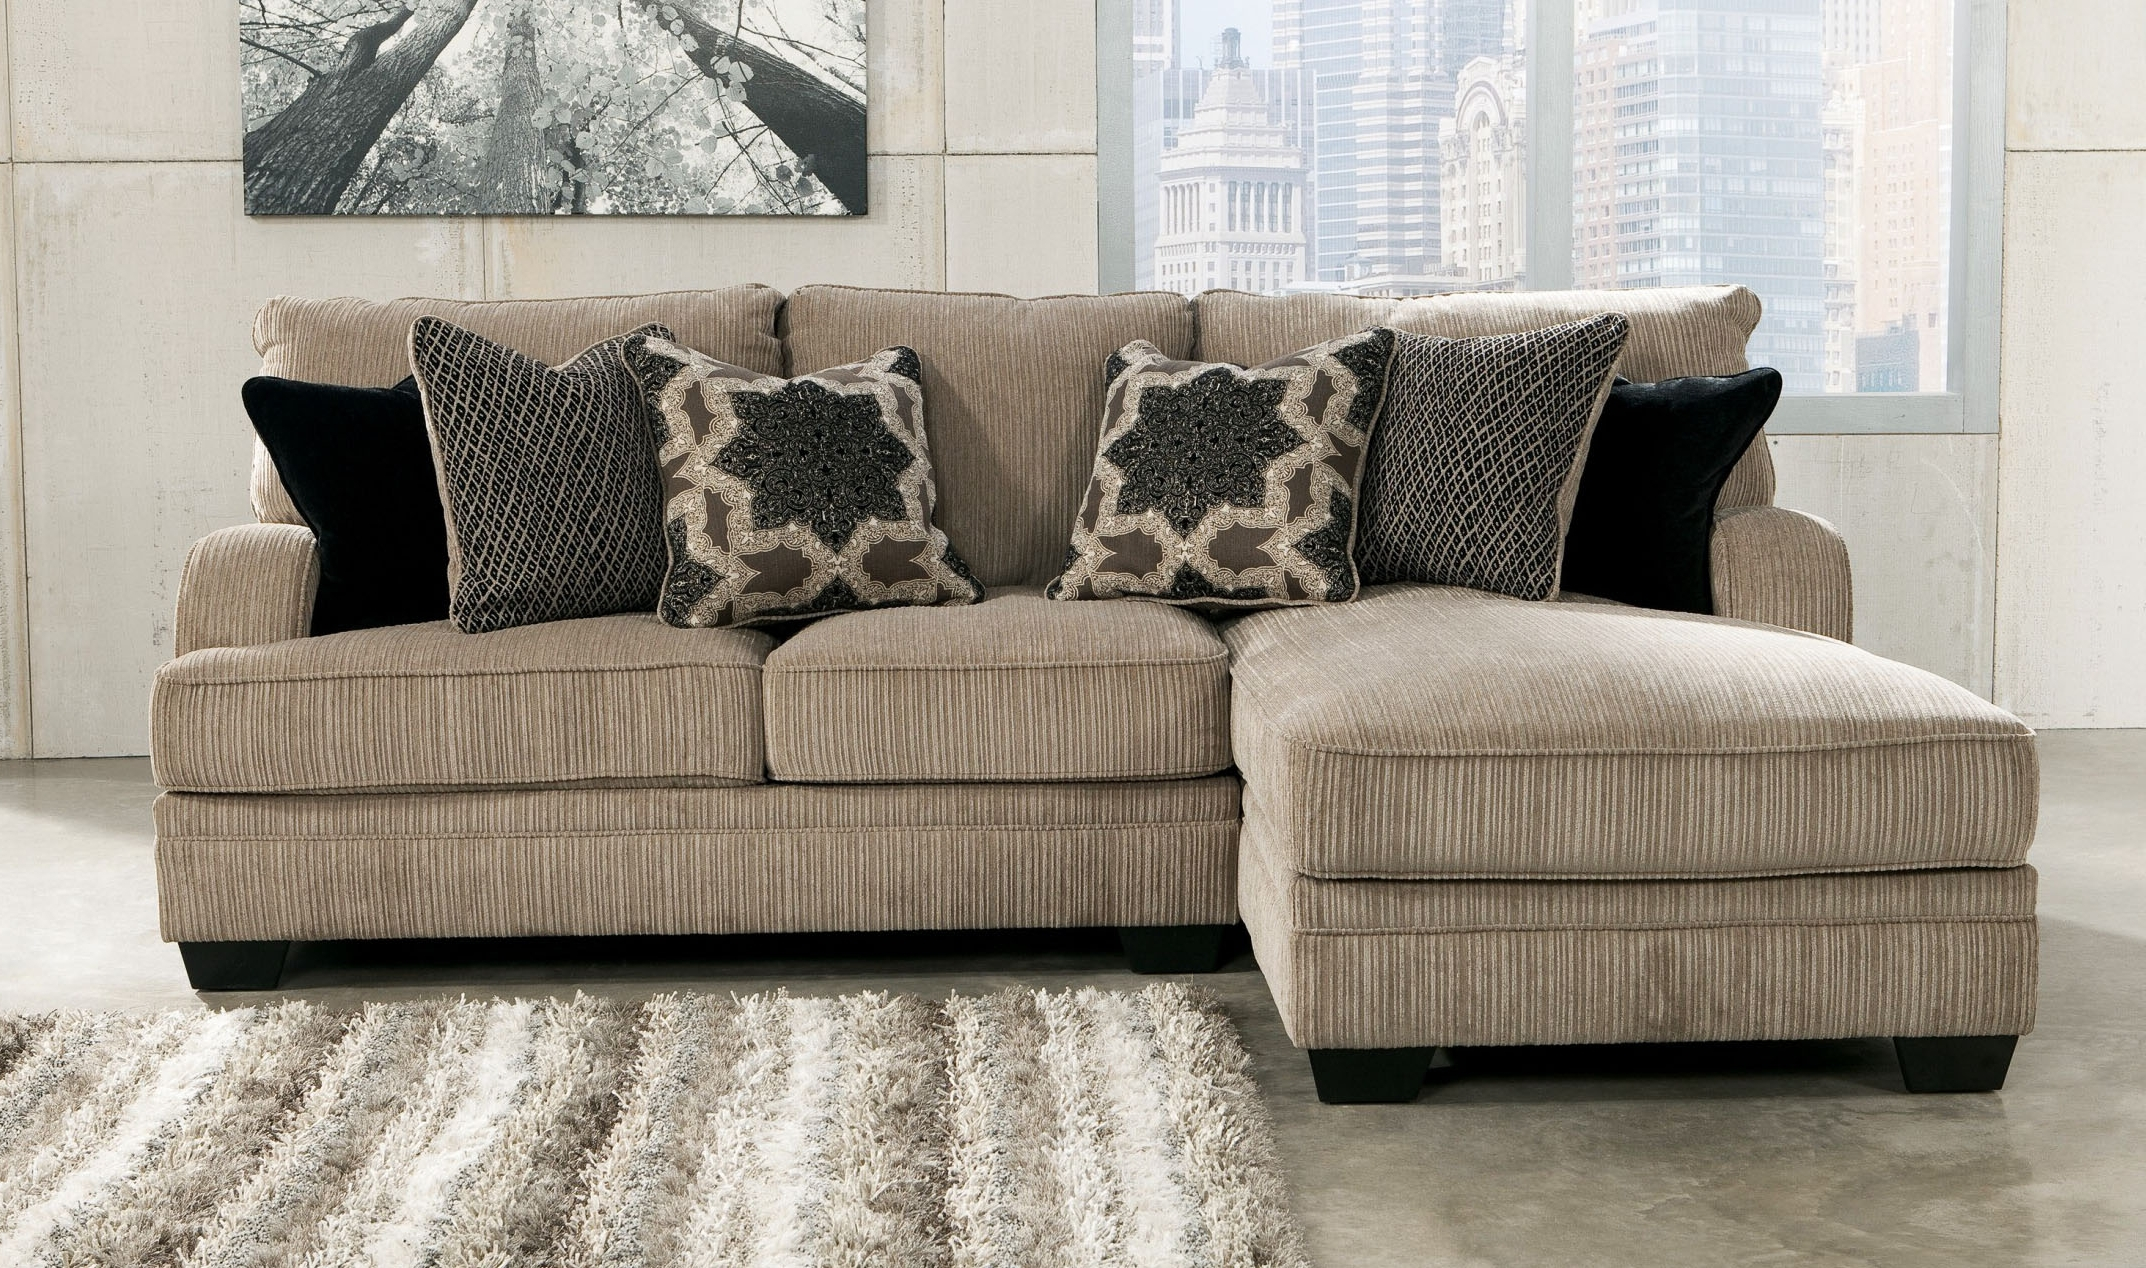 Trendy Sectional Sofas For Small Areas In Modern Sectional Sofas For Small Spaces (View 12 of 15)